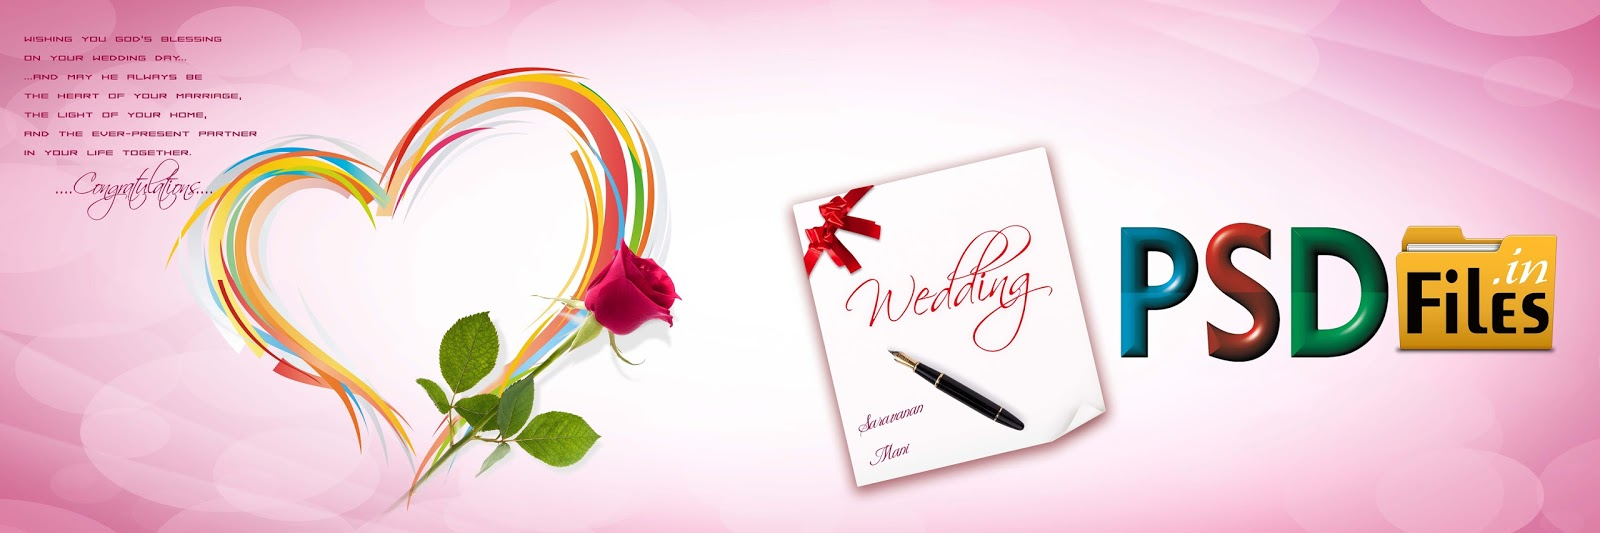 Indian Wedding Album Psd Templates Free Downloads